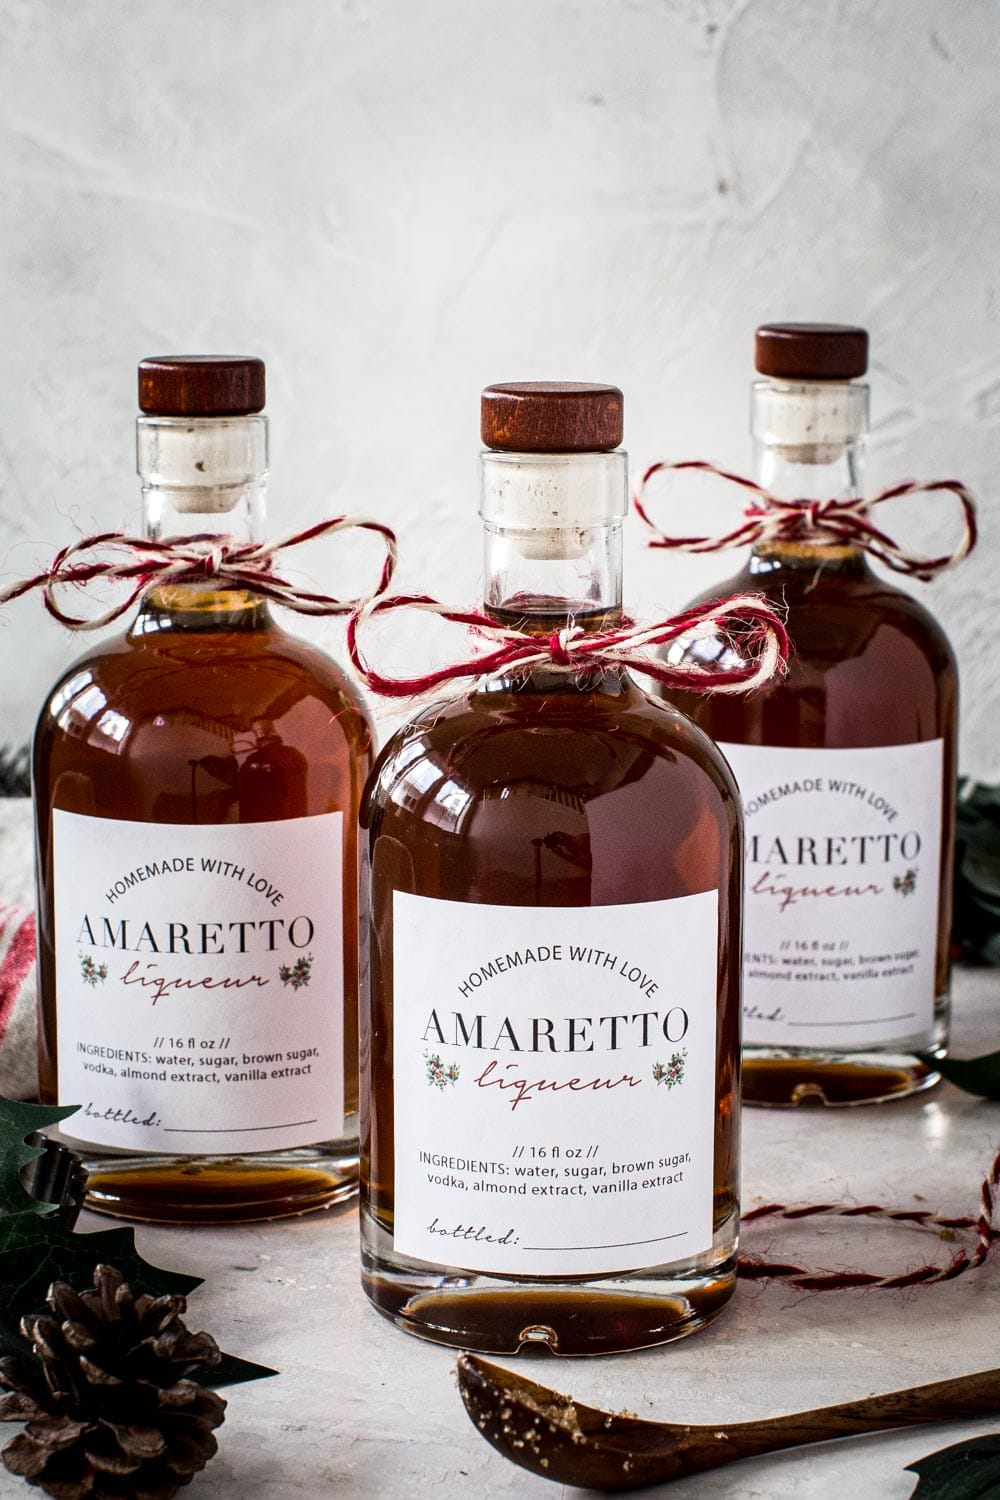 Homemade amaretto bottles with labels and string.